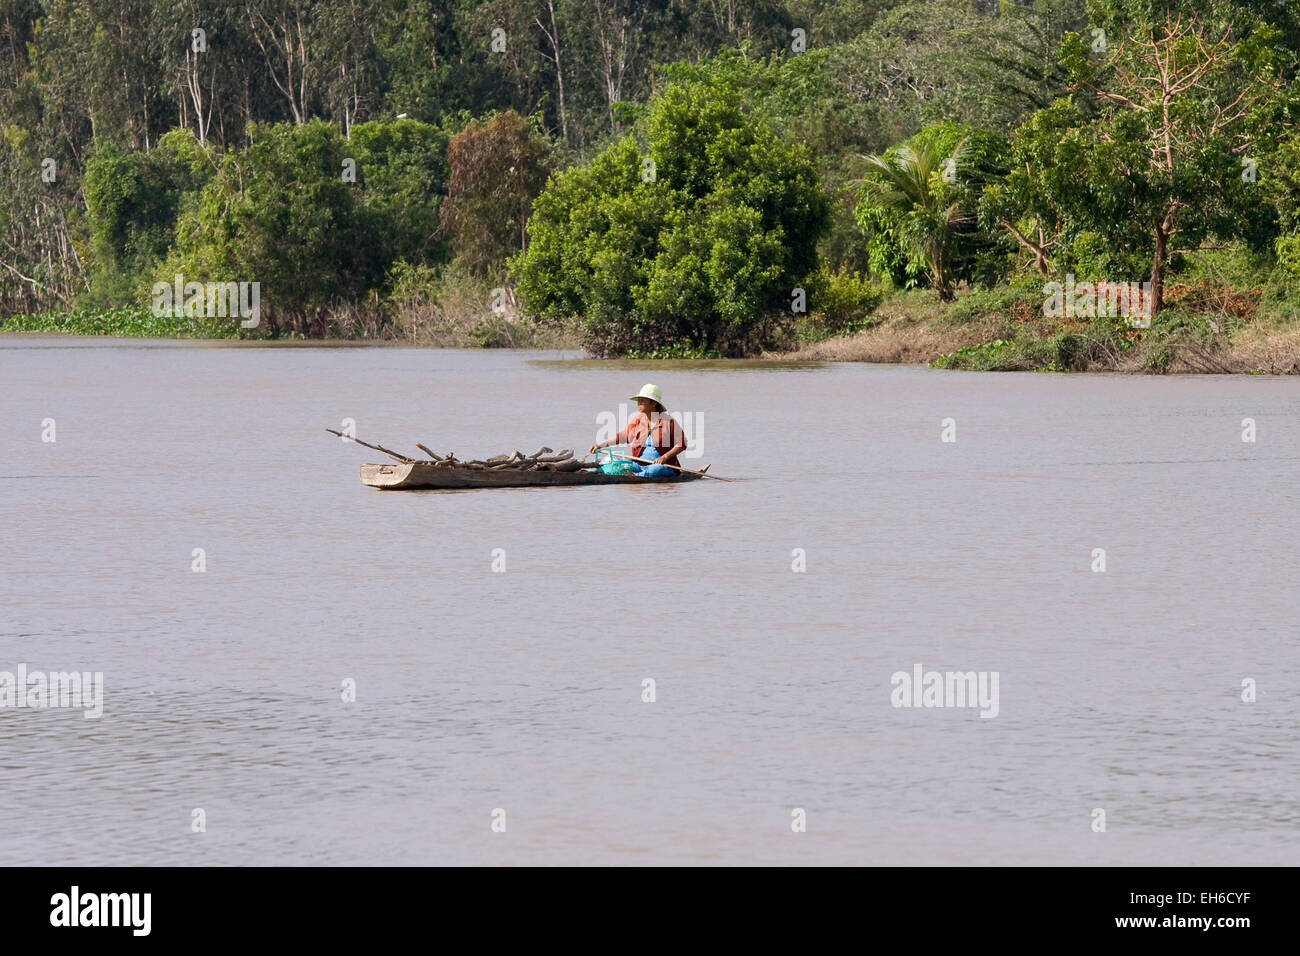 A man is riding in a canoe on the Mekong, Mekong Delta, Vietnam, Asia - Stock Image